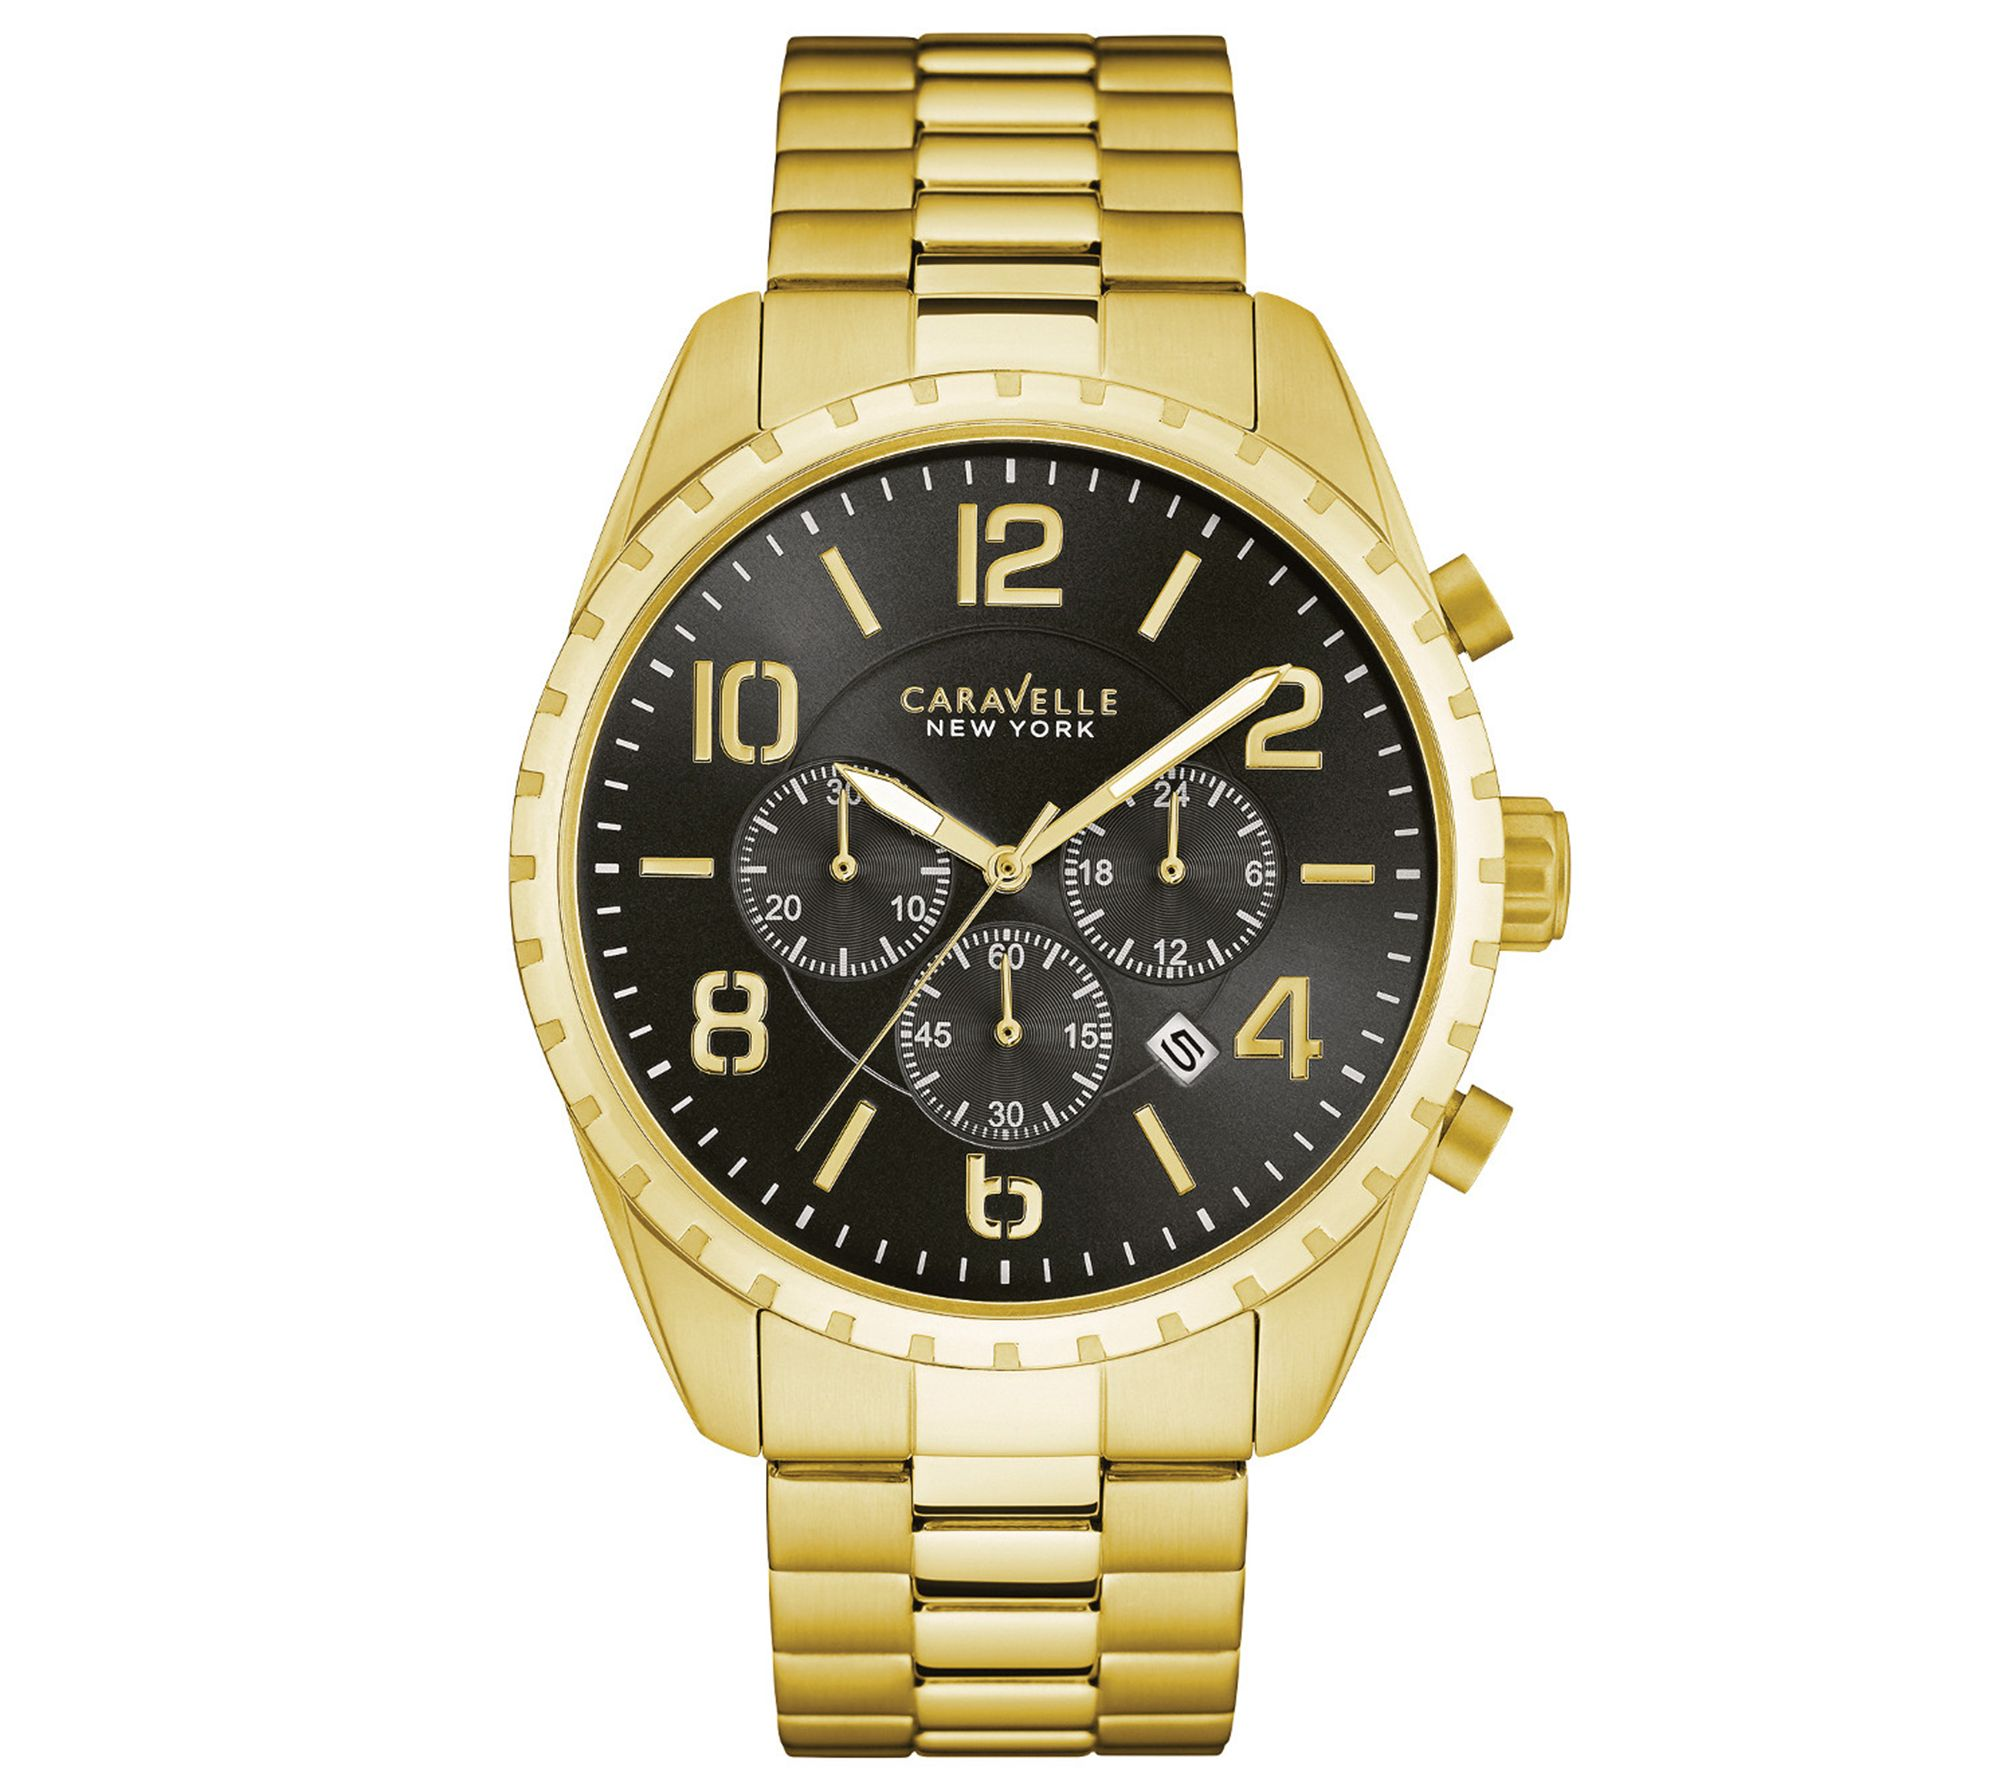 Qvc Bettwäsche Coravelle Caravelle New York Men 39s Goldtone Chronograph Watch Qvc